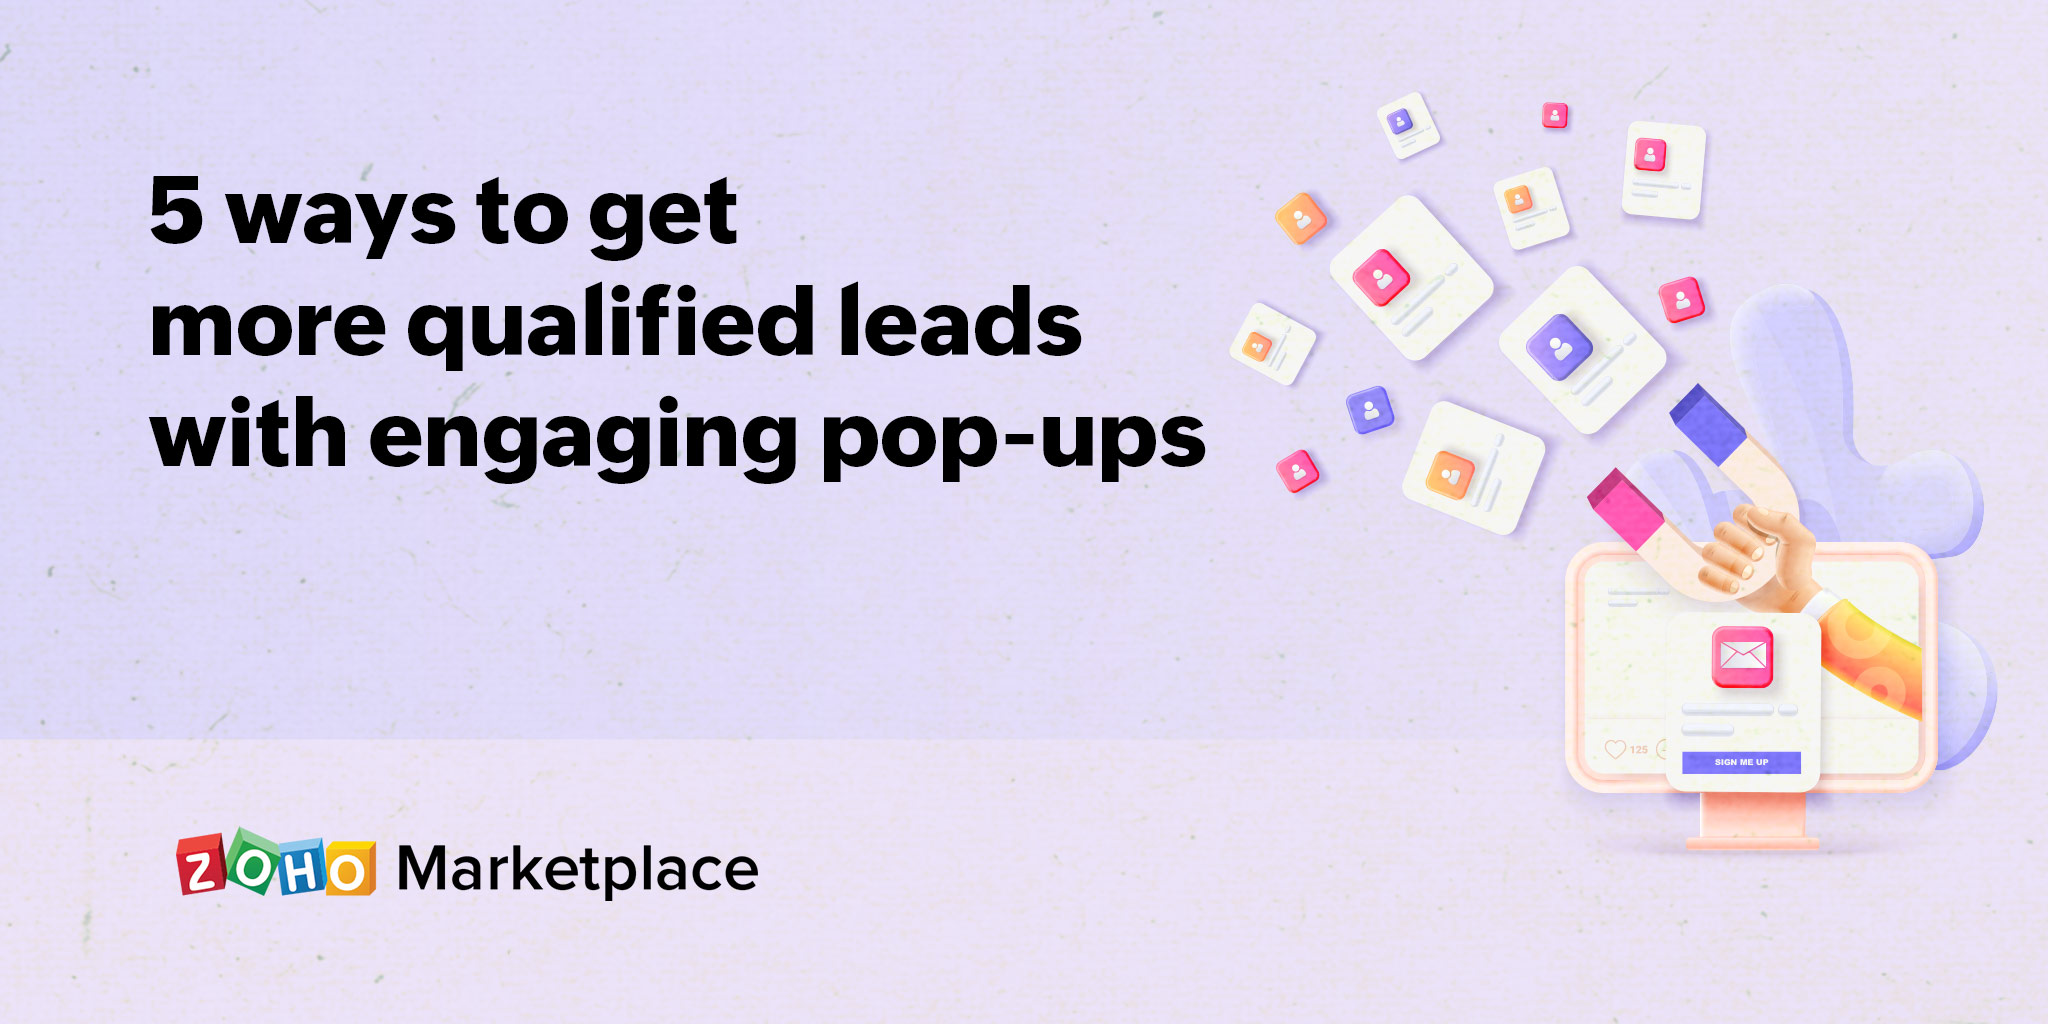 5 ways to get more qualified leads with engaging pop-ups